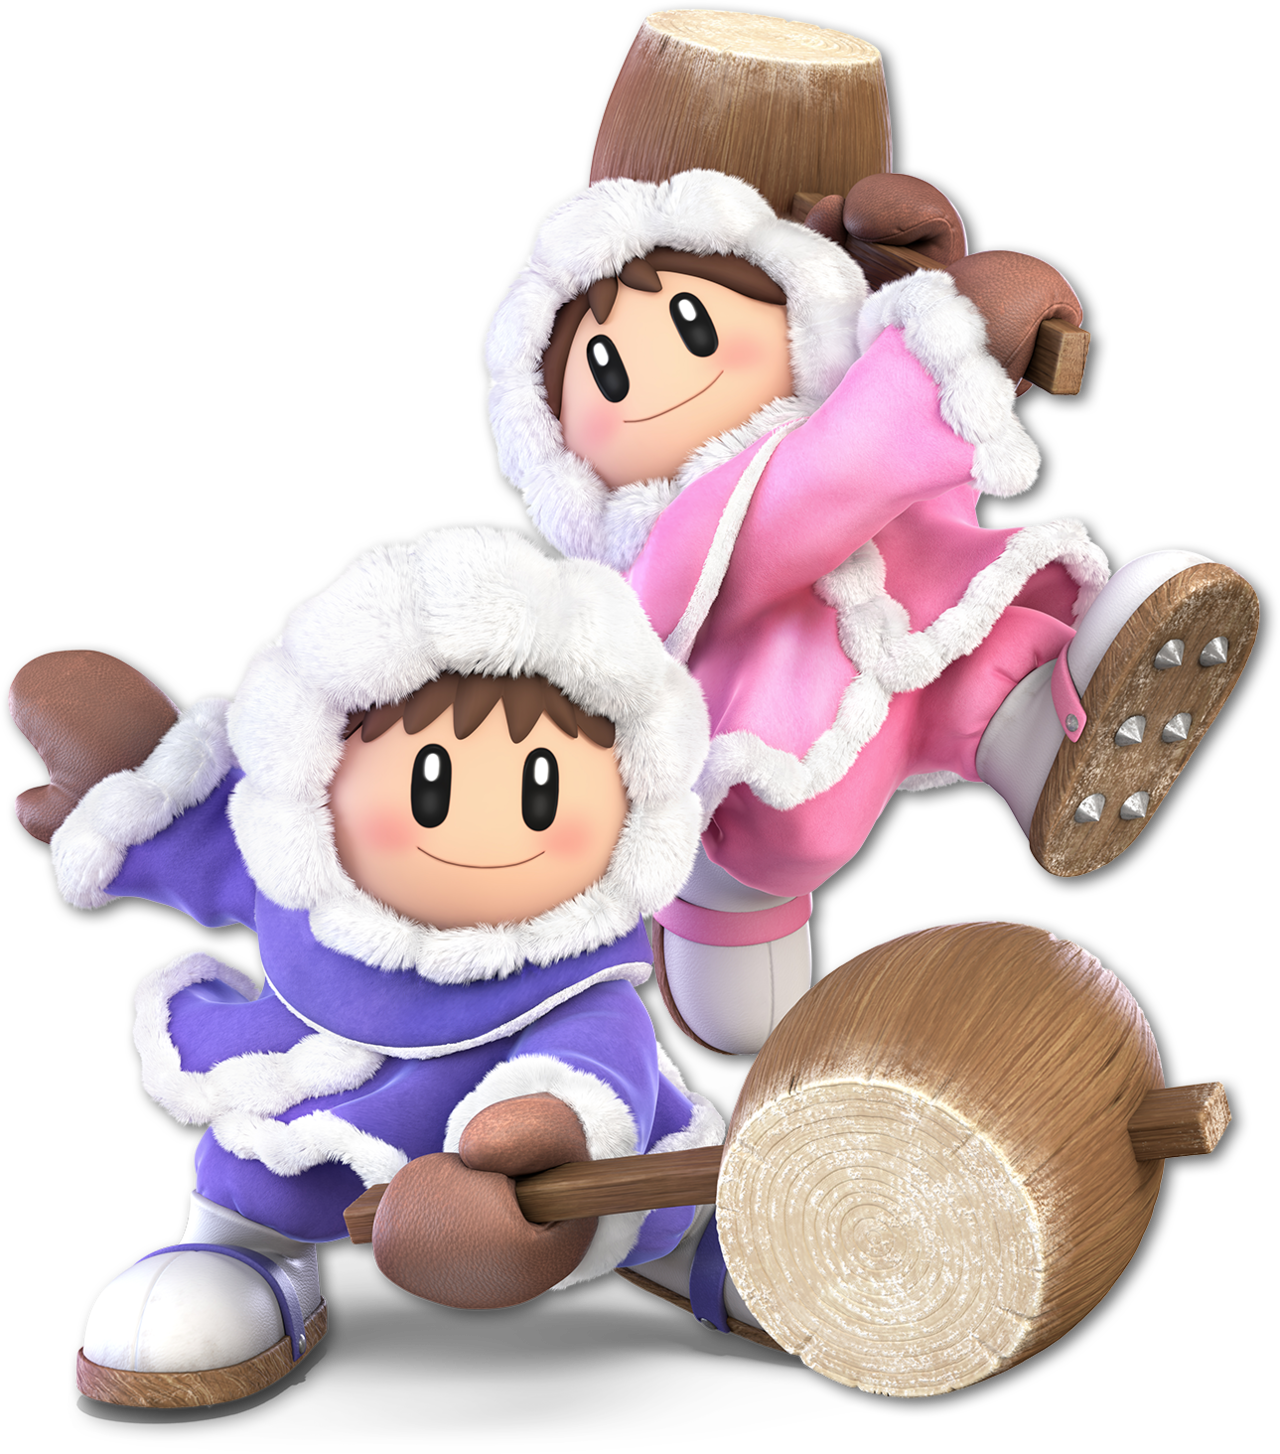 Climber clipart ice climbing. Climbers in super smash